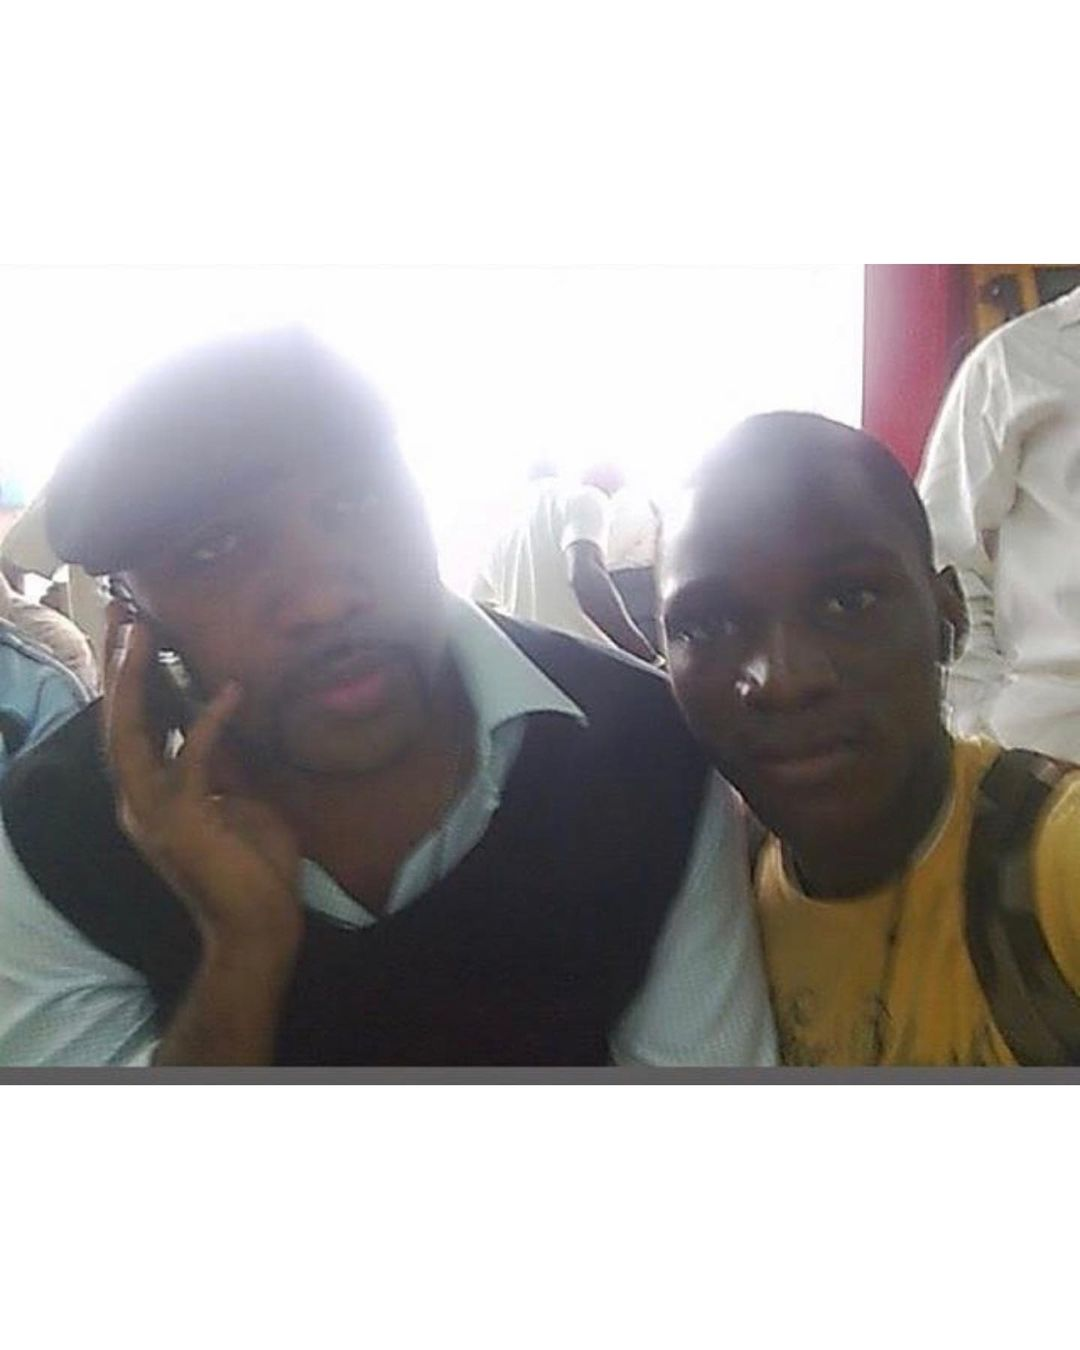 Tobi Bakre Shares Throwback Picture Of Him & Banky W